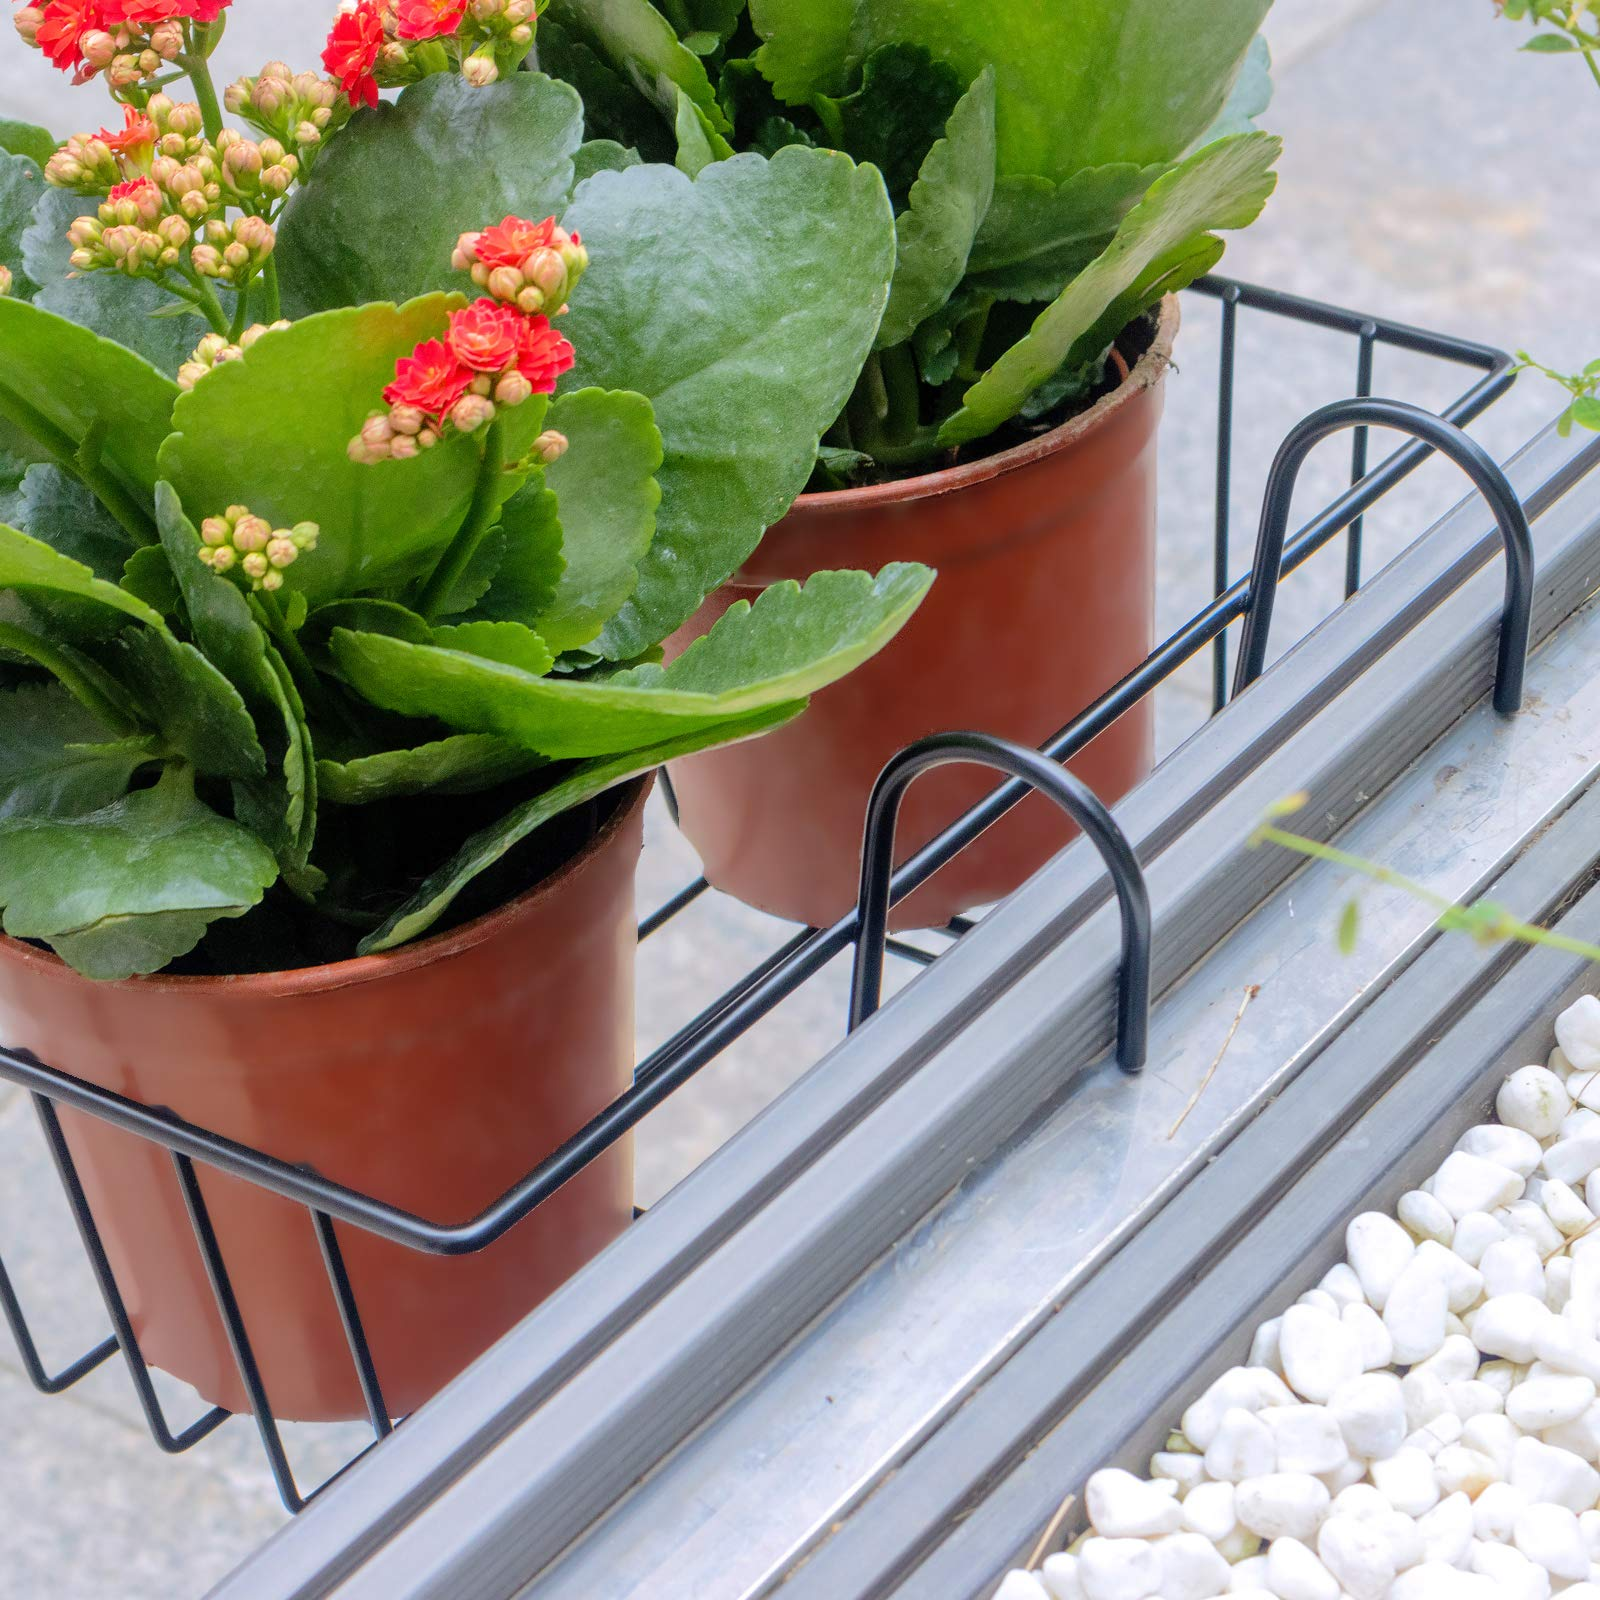 Small ORZ Over Deck Railing Planter Balcony Hanging Window Box ...